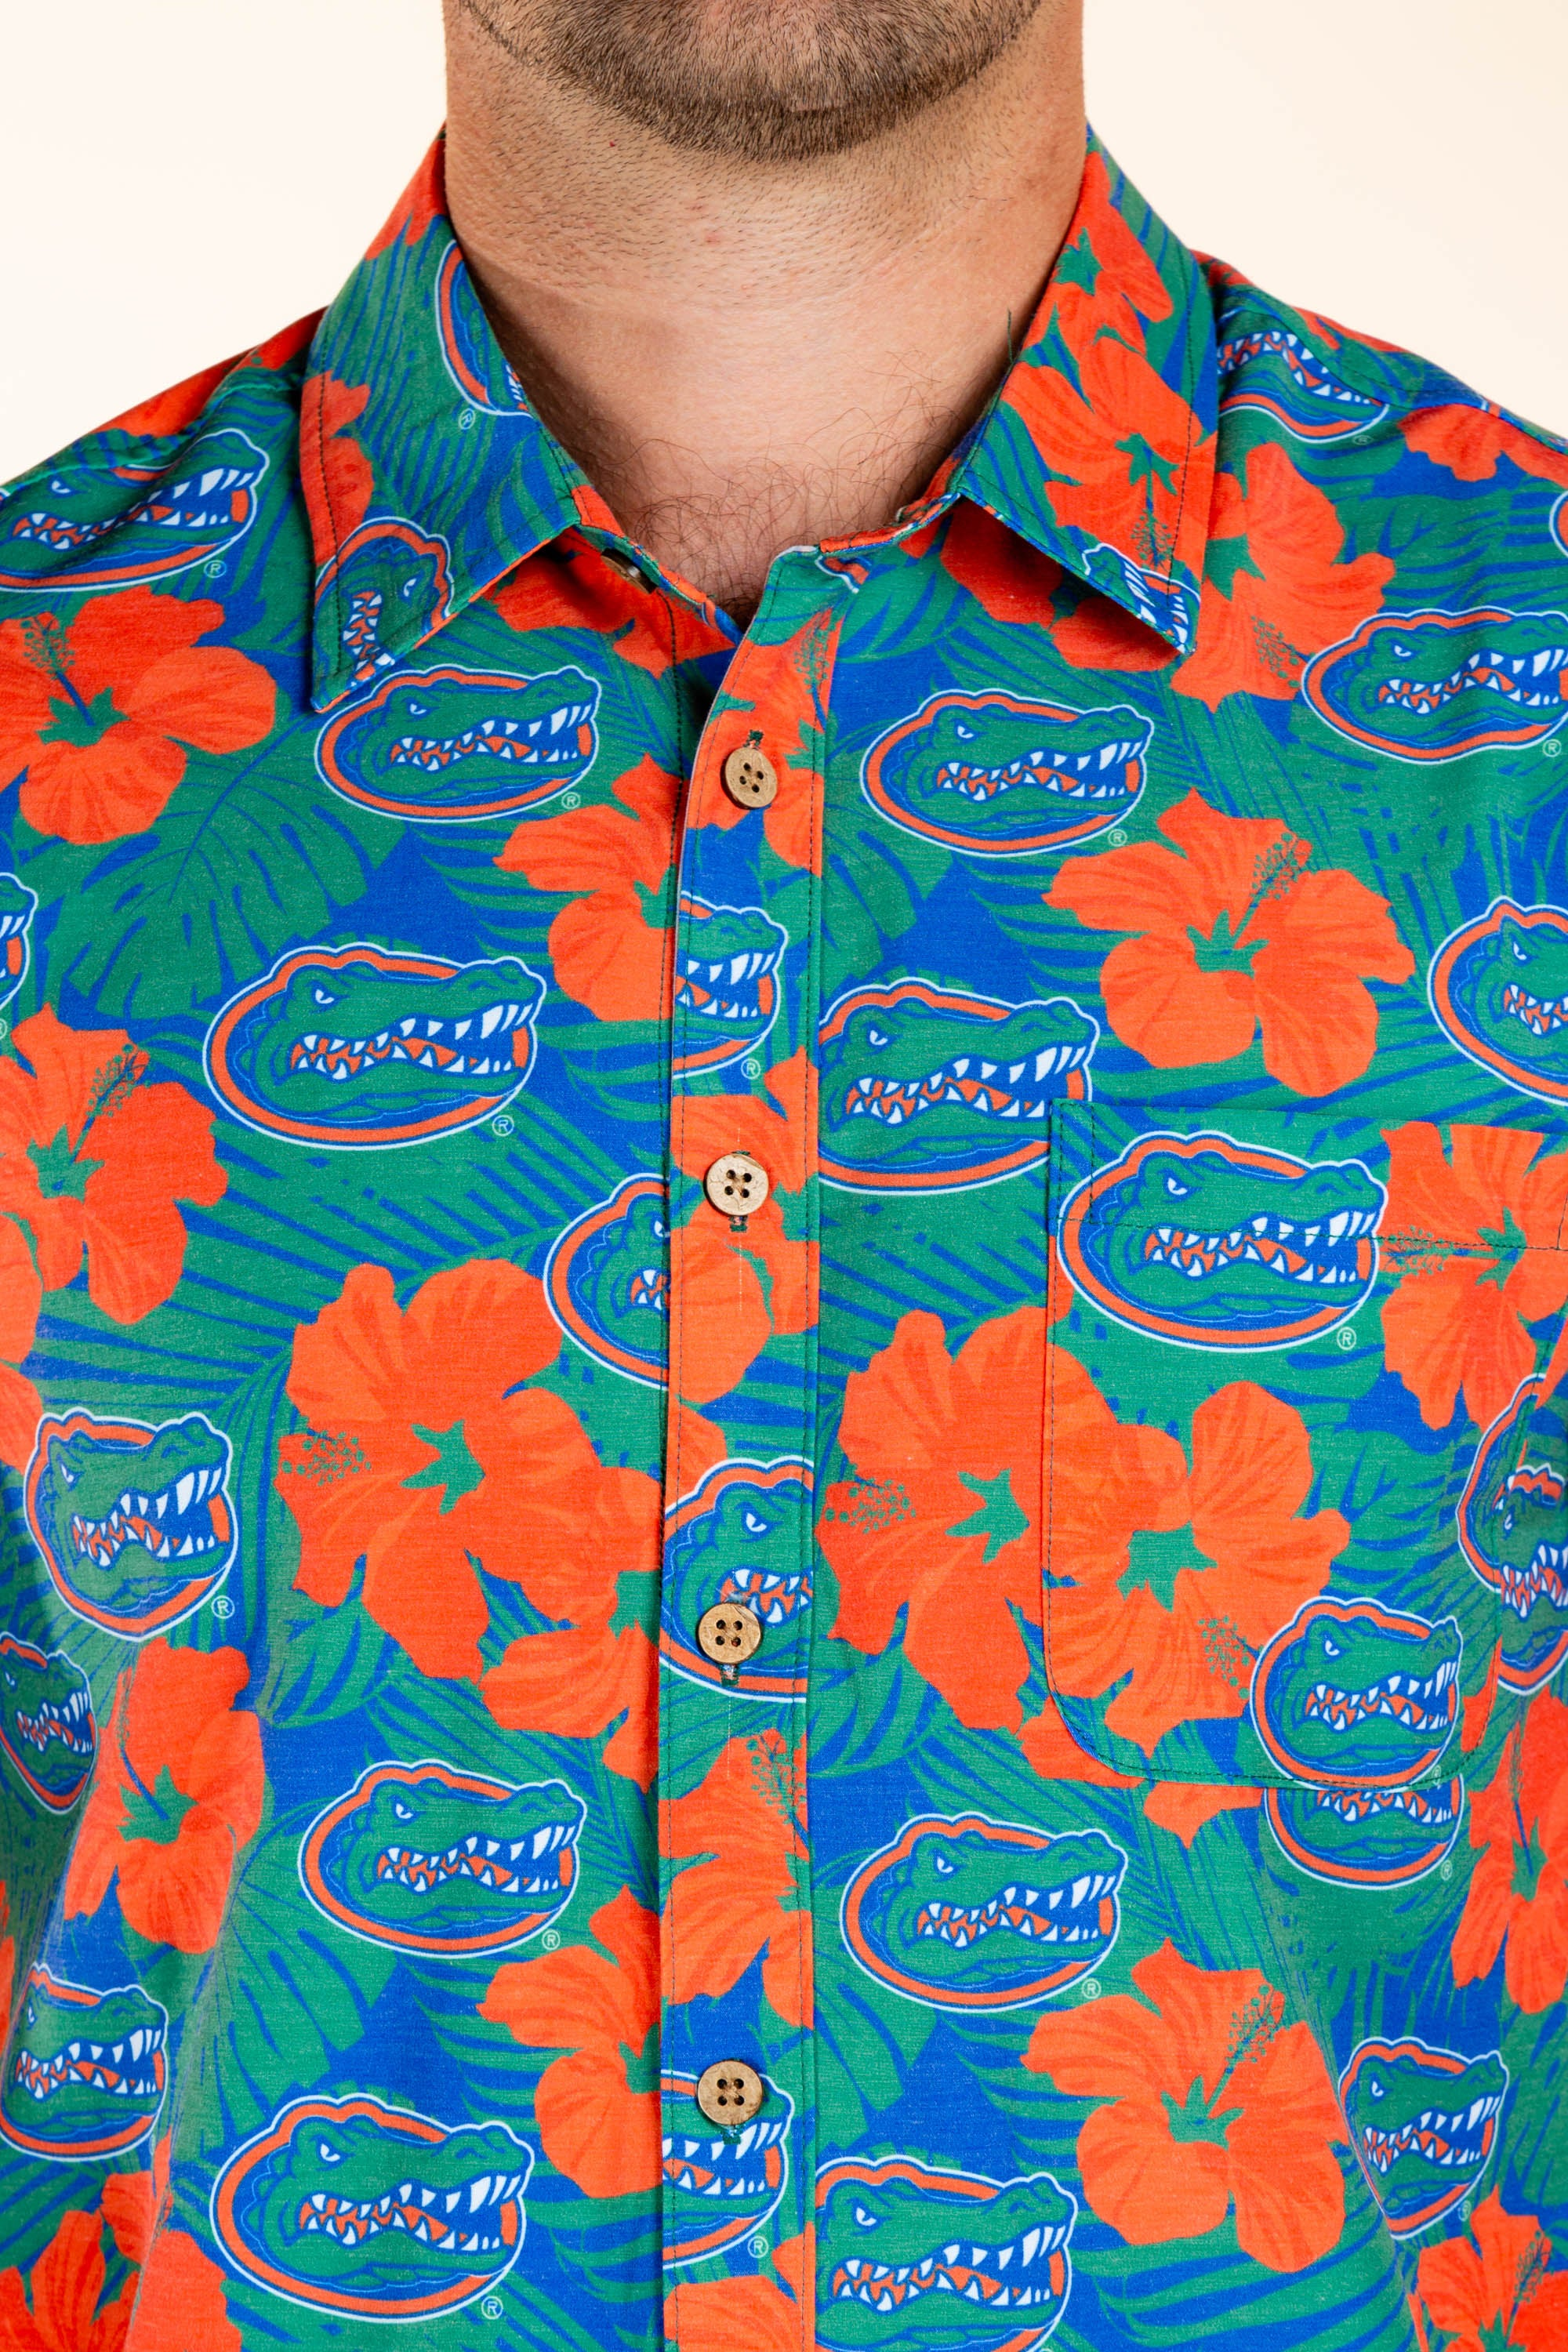 University of Florida Floral Tailgating Shirt